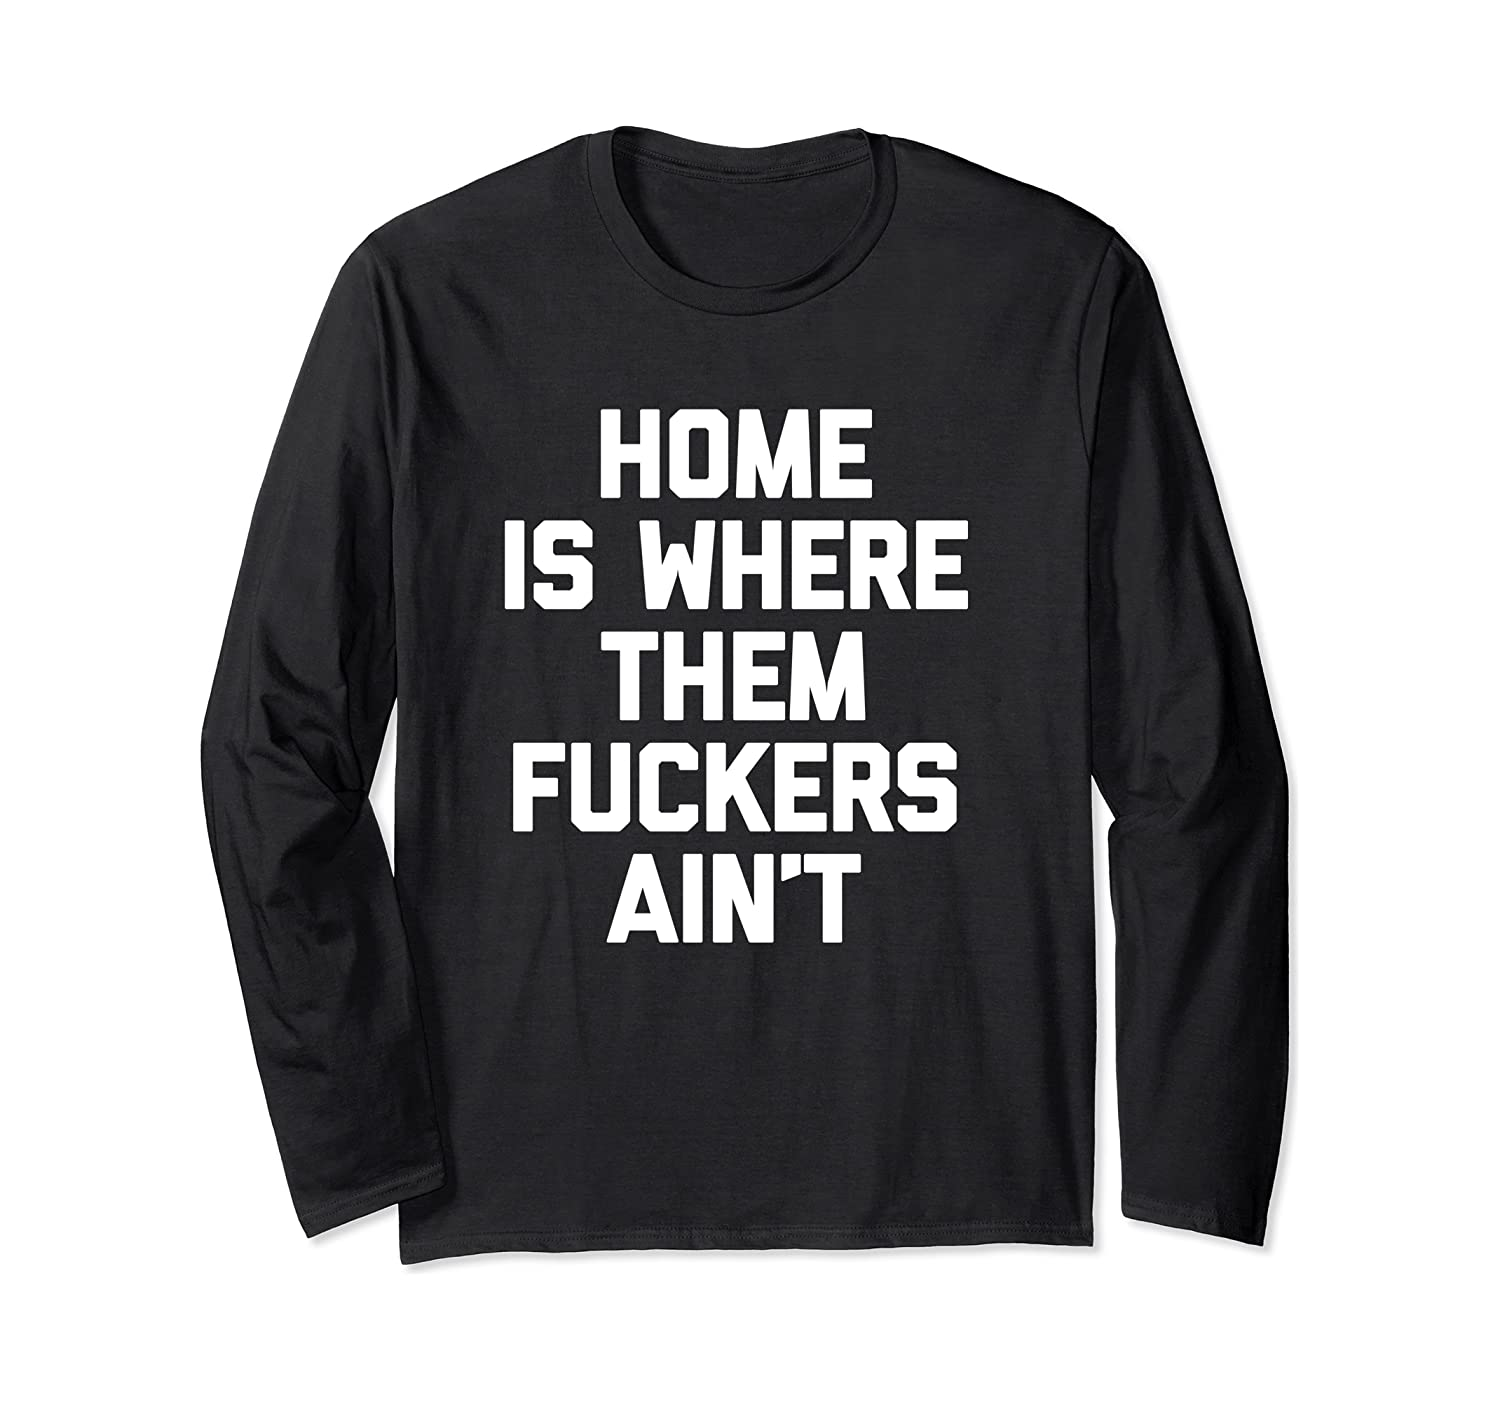 Home Is Where Them Fuckers Ain't T-Shirt funny saying cool Long Sleeve T-Shirt